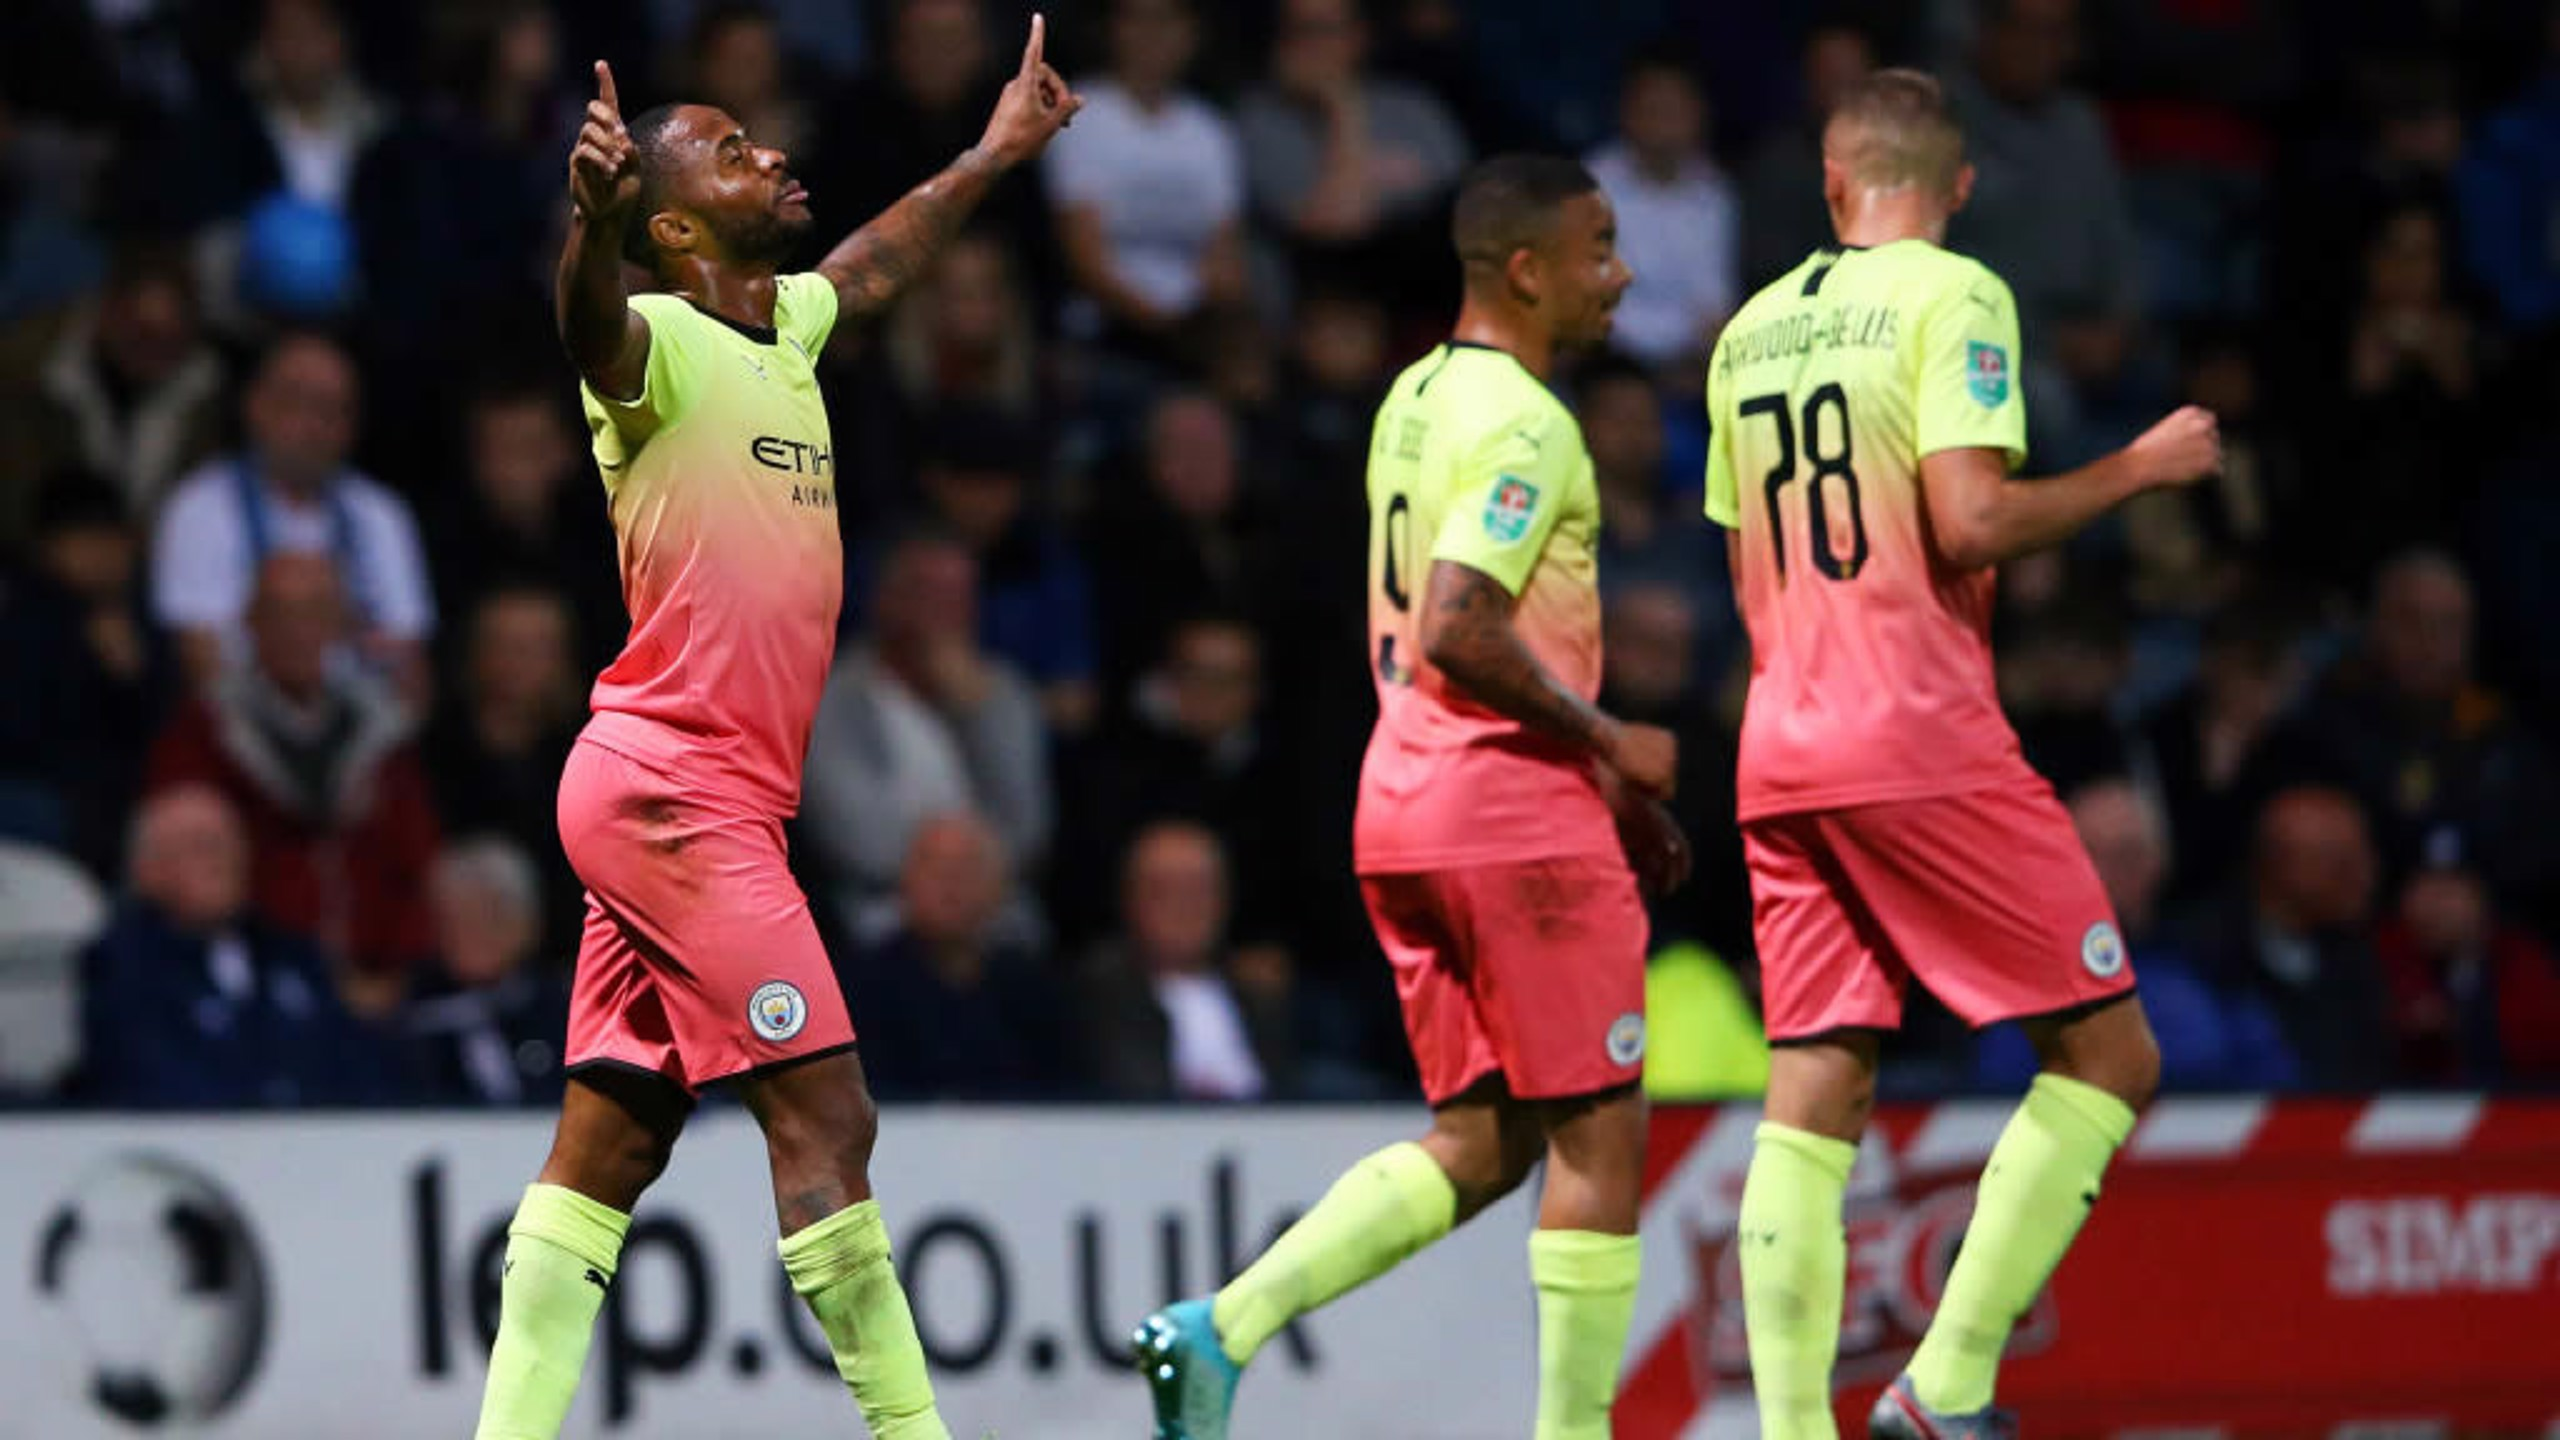 Gallery: City turn on the style at Deepdale